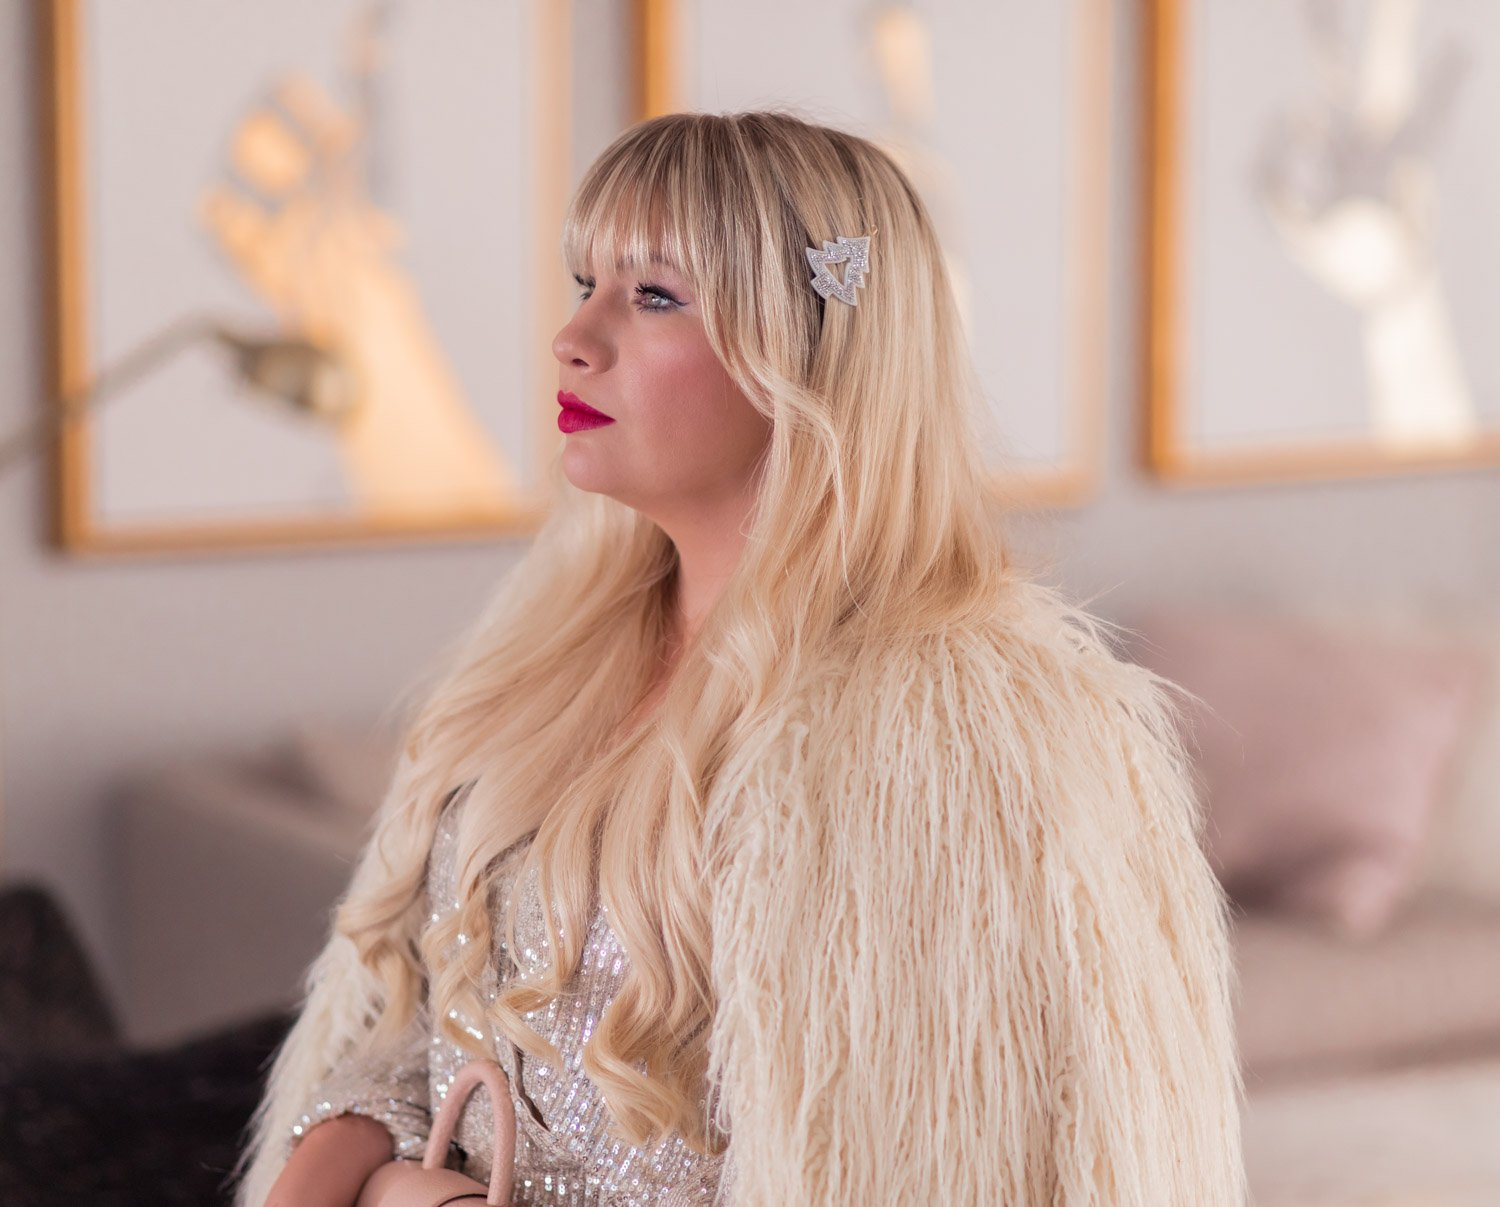 Elizabeth Hugen of Lizzie in Lace shares a feminine holiday outfit idea featuring New Years eve hair.